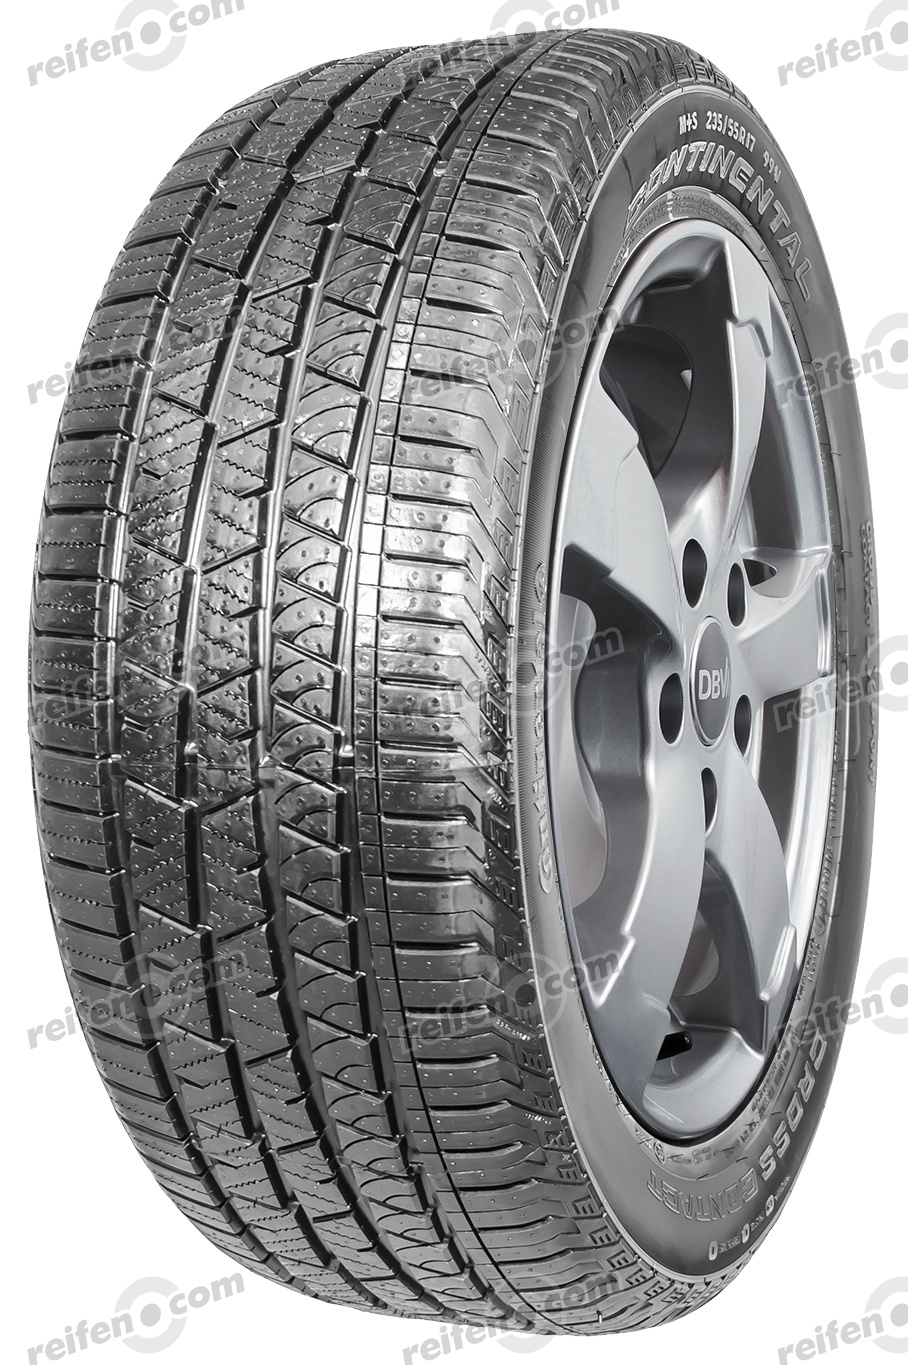 255/55 R18 105H CrossContact LX Sport MO ML  CrossContact LX Sport MO ML